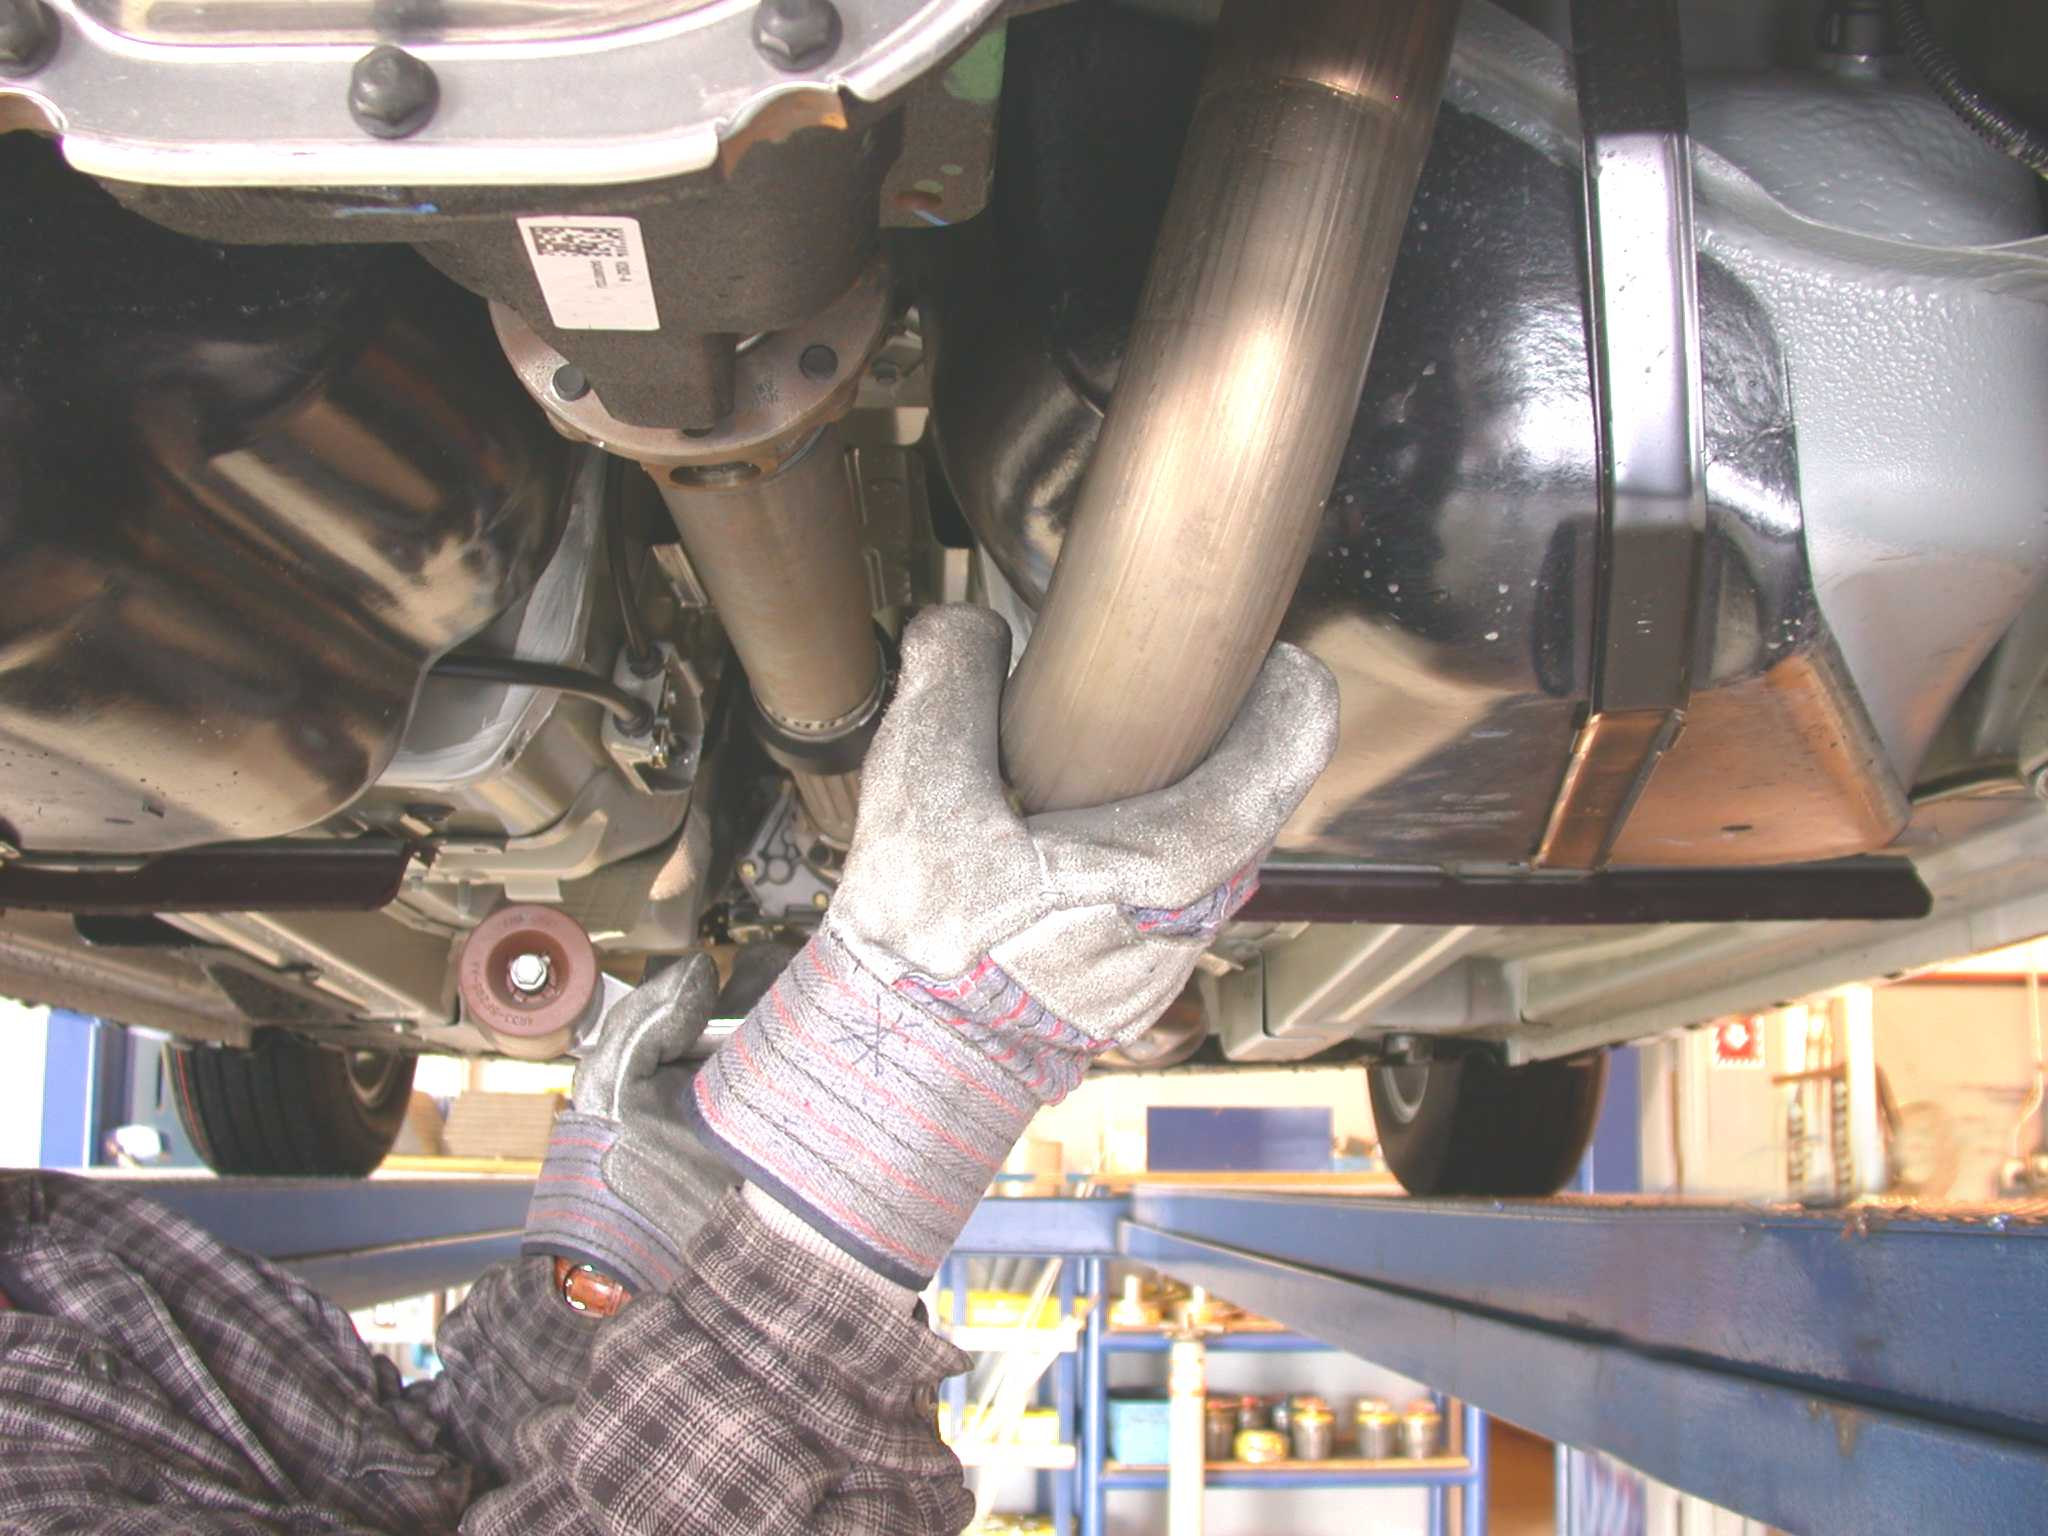 How to Install a Borla Axle-Back Exhaust on a 2005-2009 Mustang V6 05